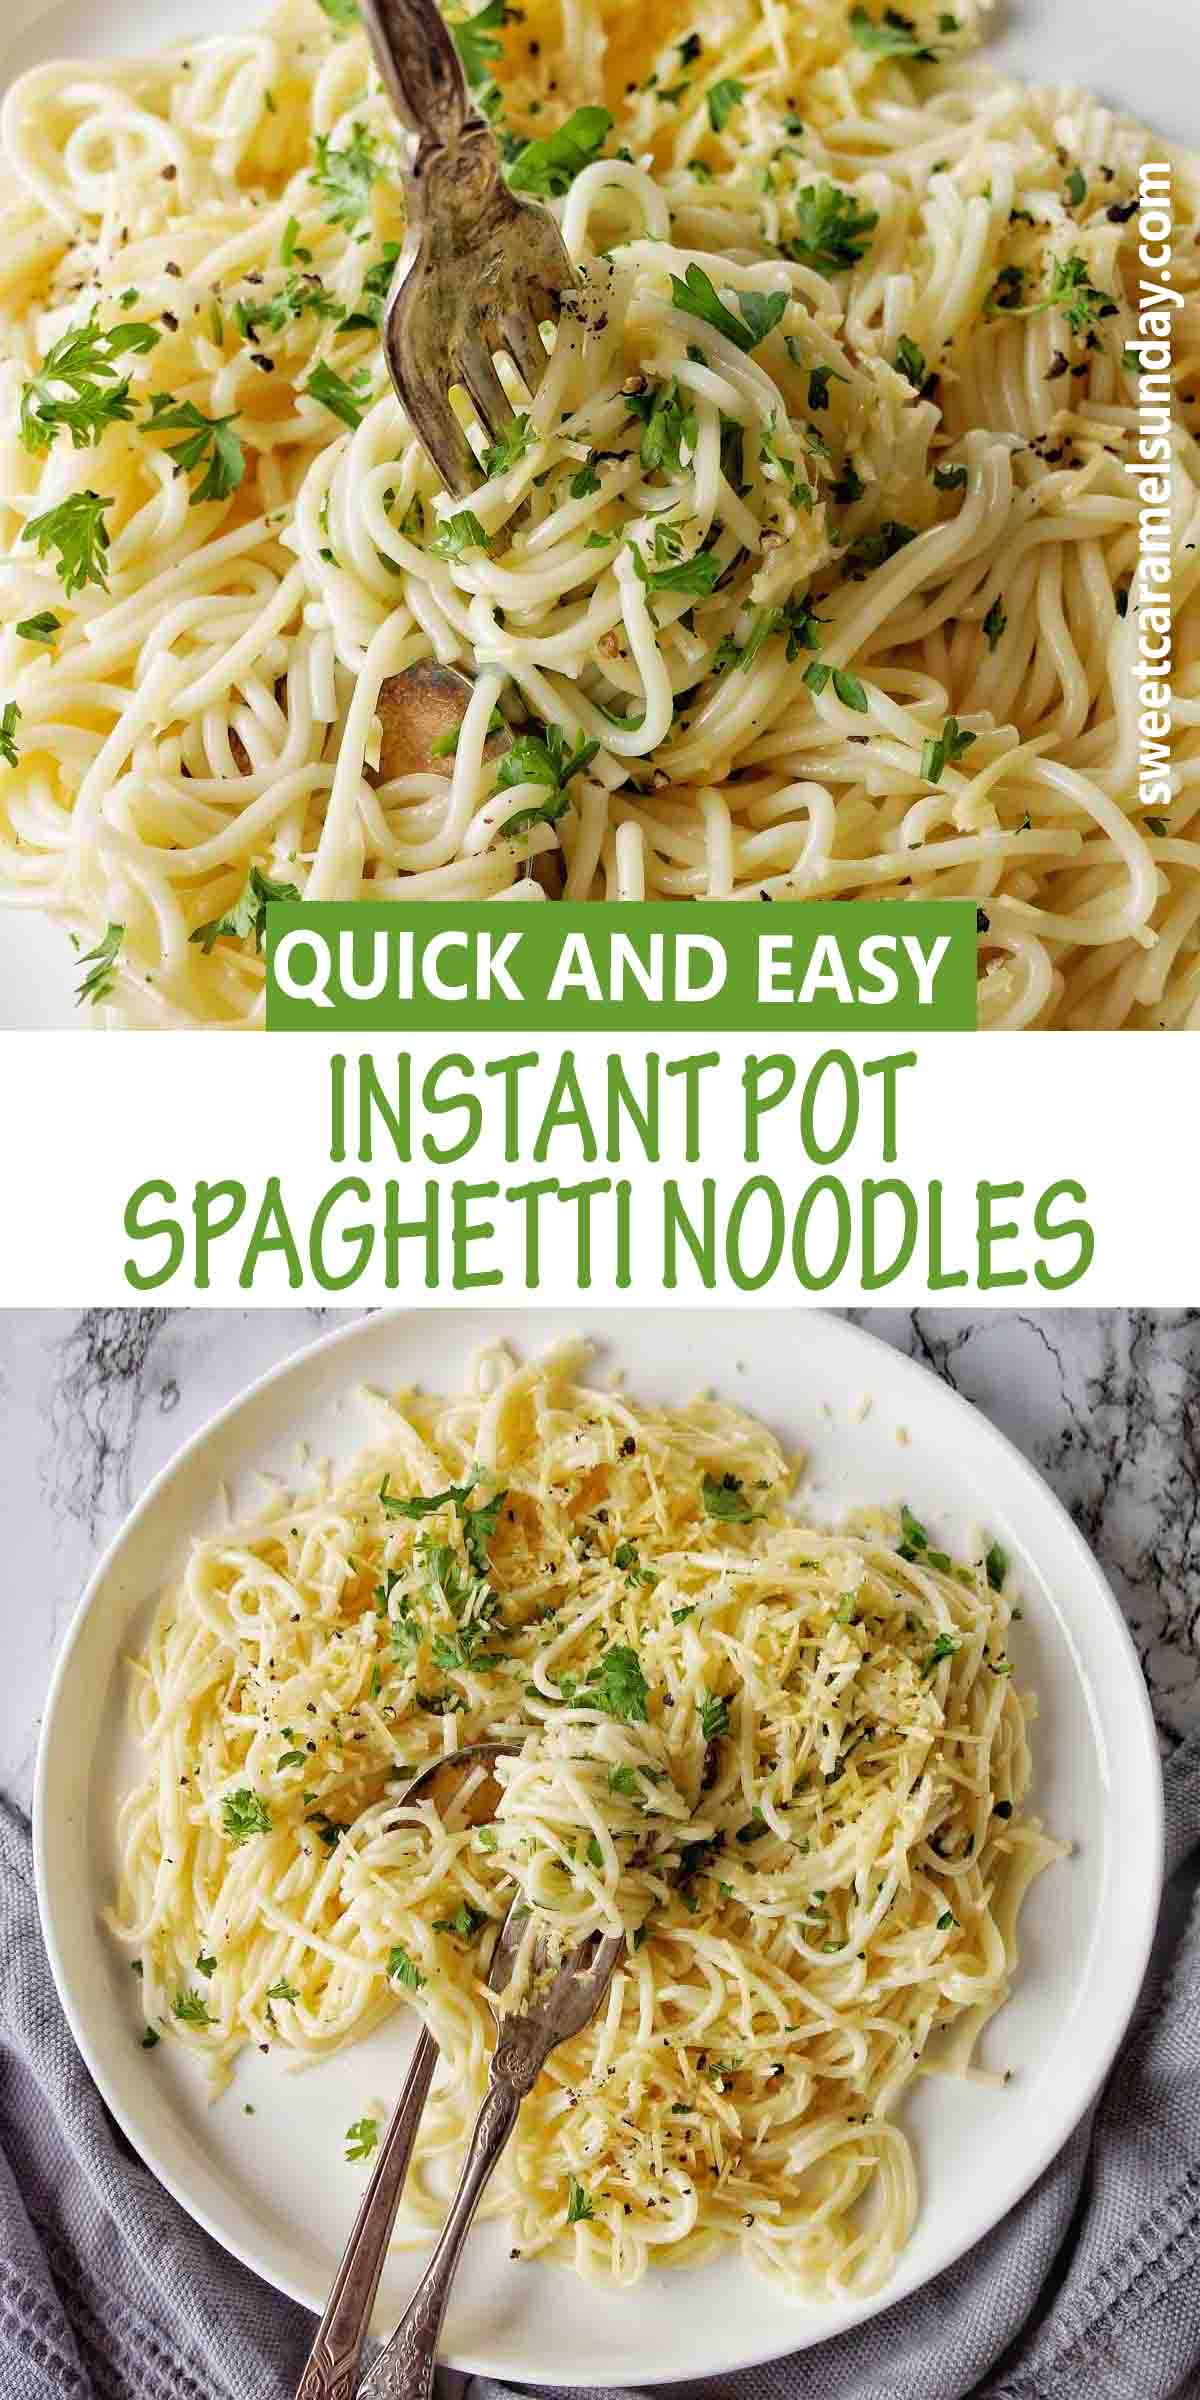 Instant Pot Spaghetti Noodles with text label